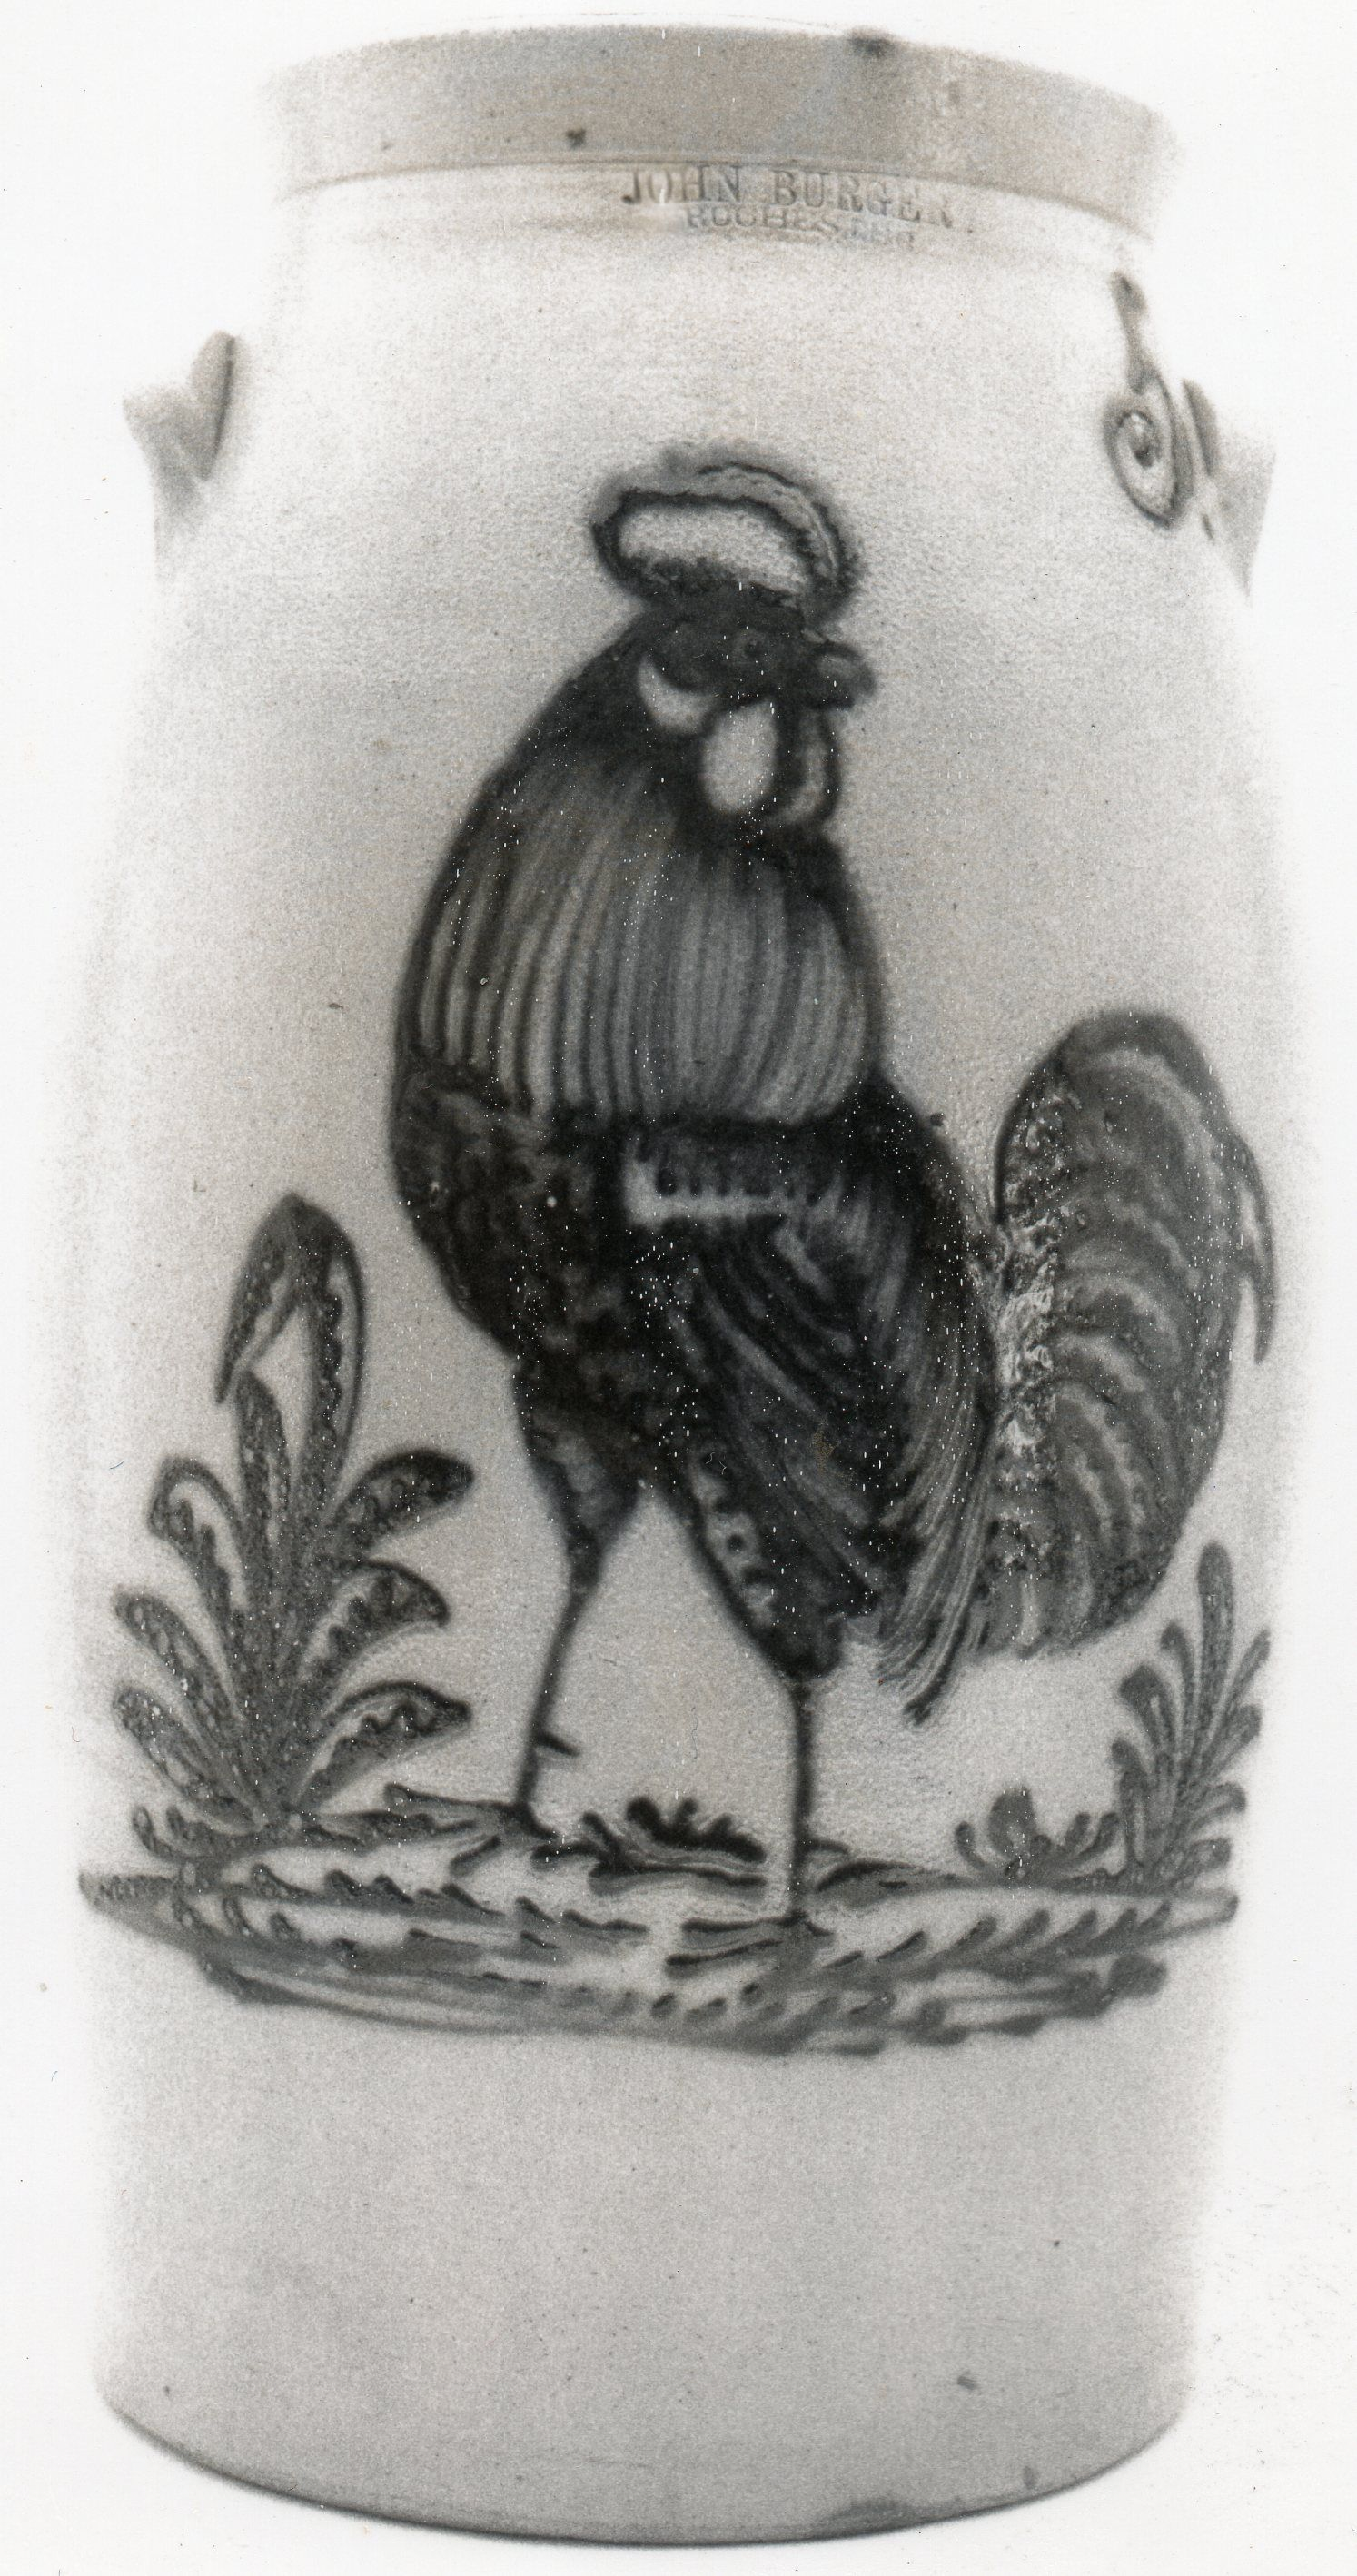 5 gal.J.Burger churn with a large highly detailed rooster on cround cover.